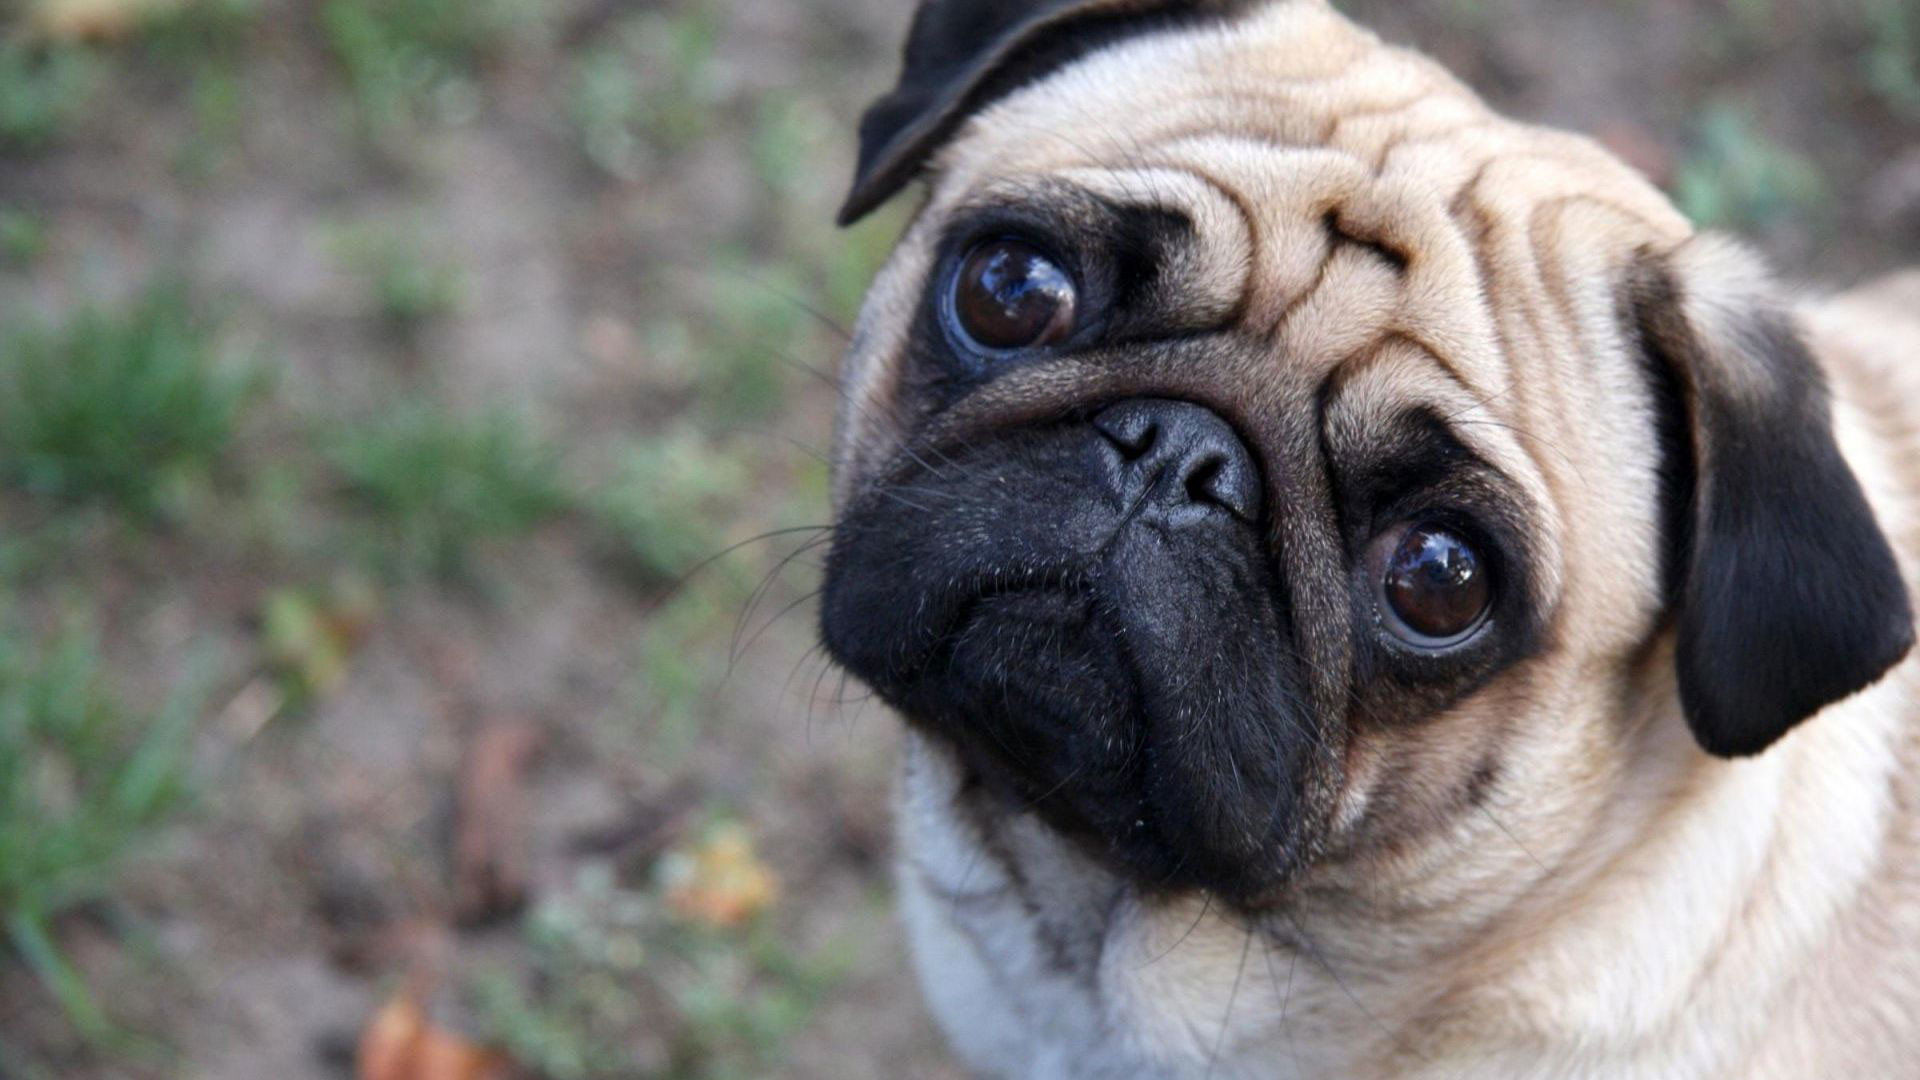 1920x1080 hd pics photos best beautiful pug dog attractive face close up hd quality  desktop background wallpaper